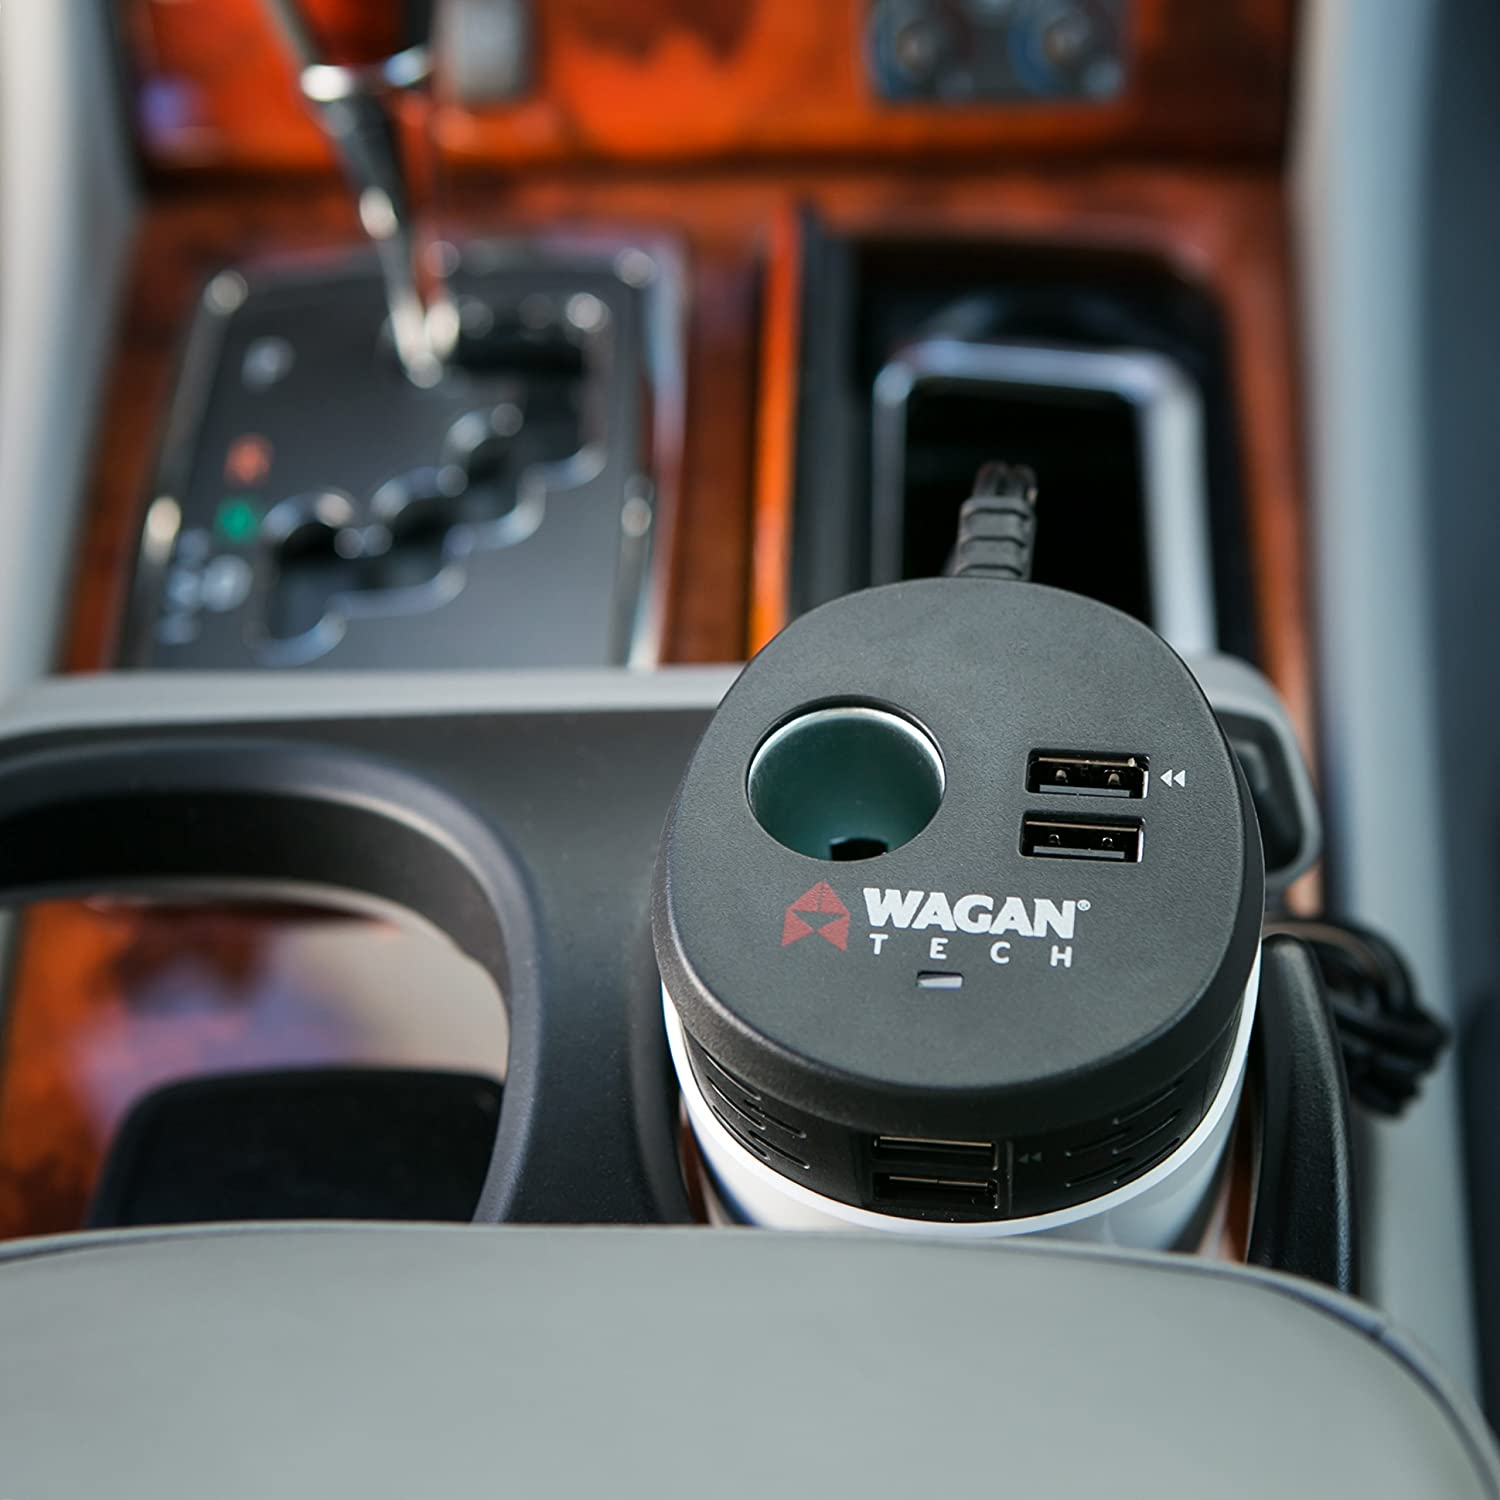 Wagan Travel Charge Series USB 6.2 Amp Quad Power Cup 12V DC and USB power ports EL2886